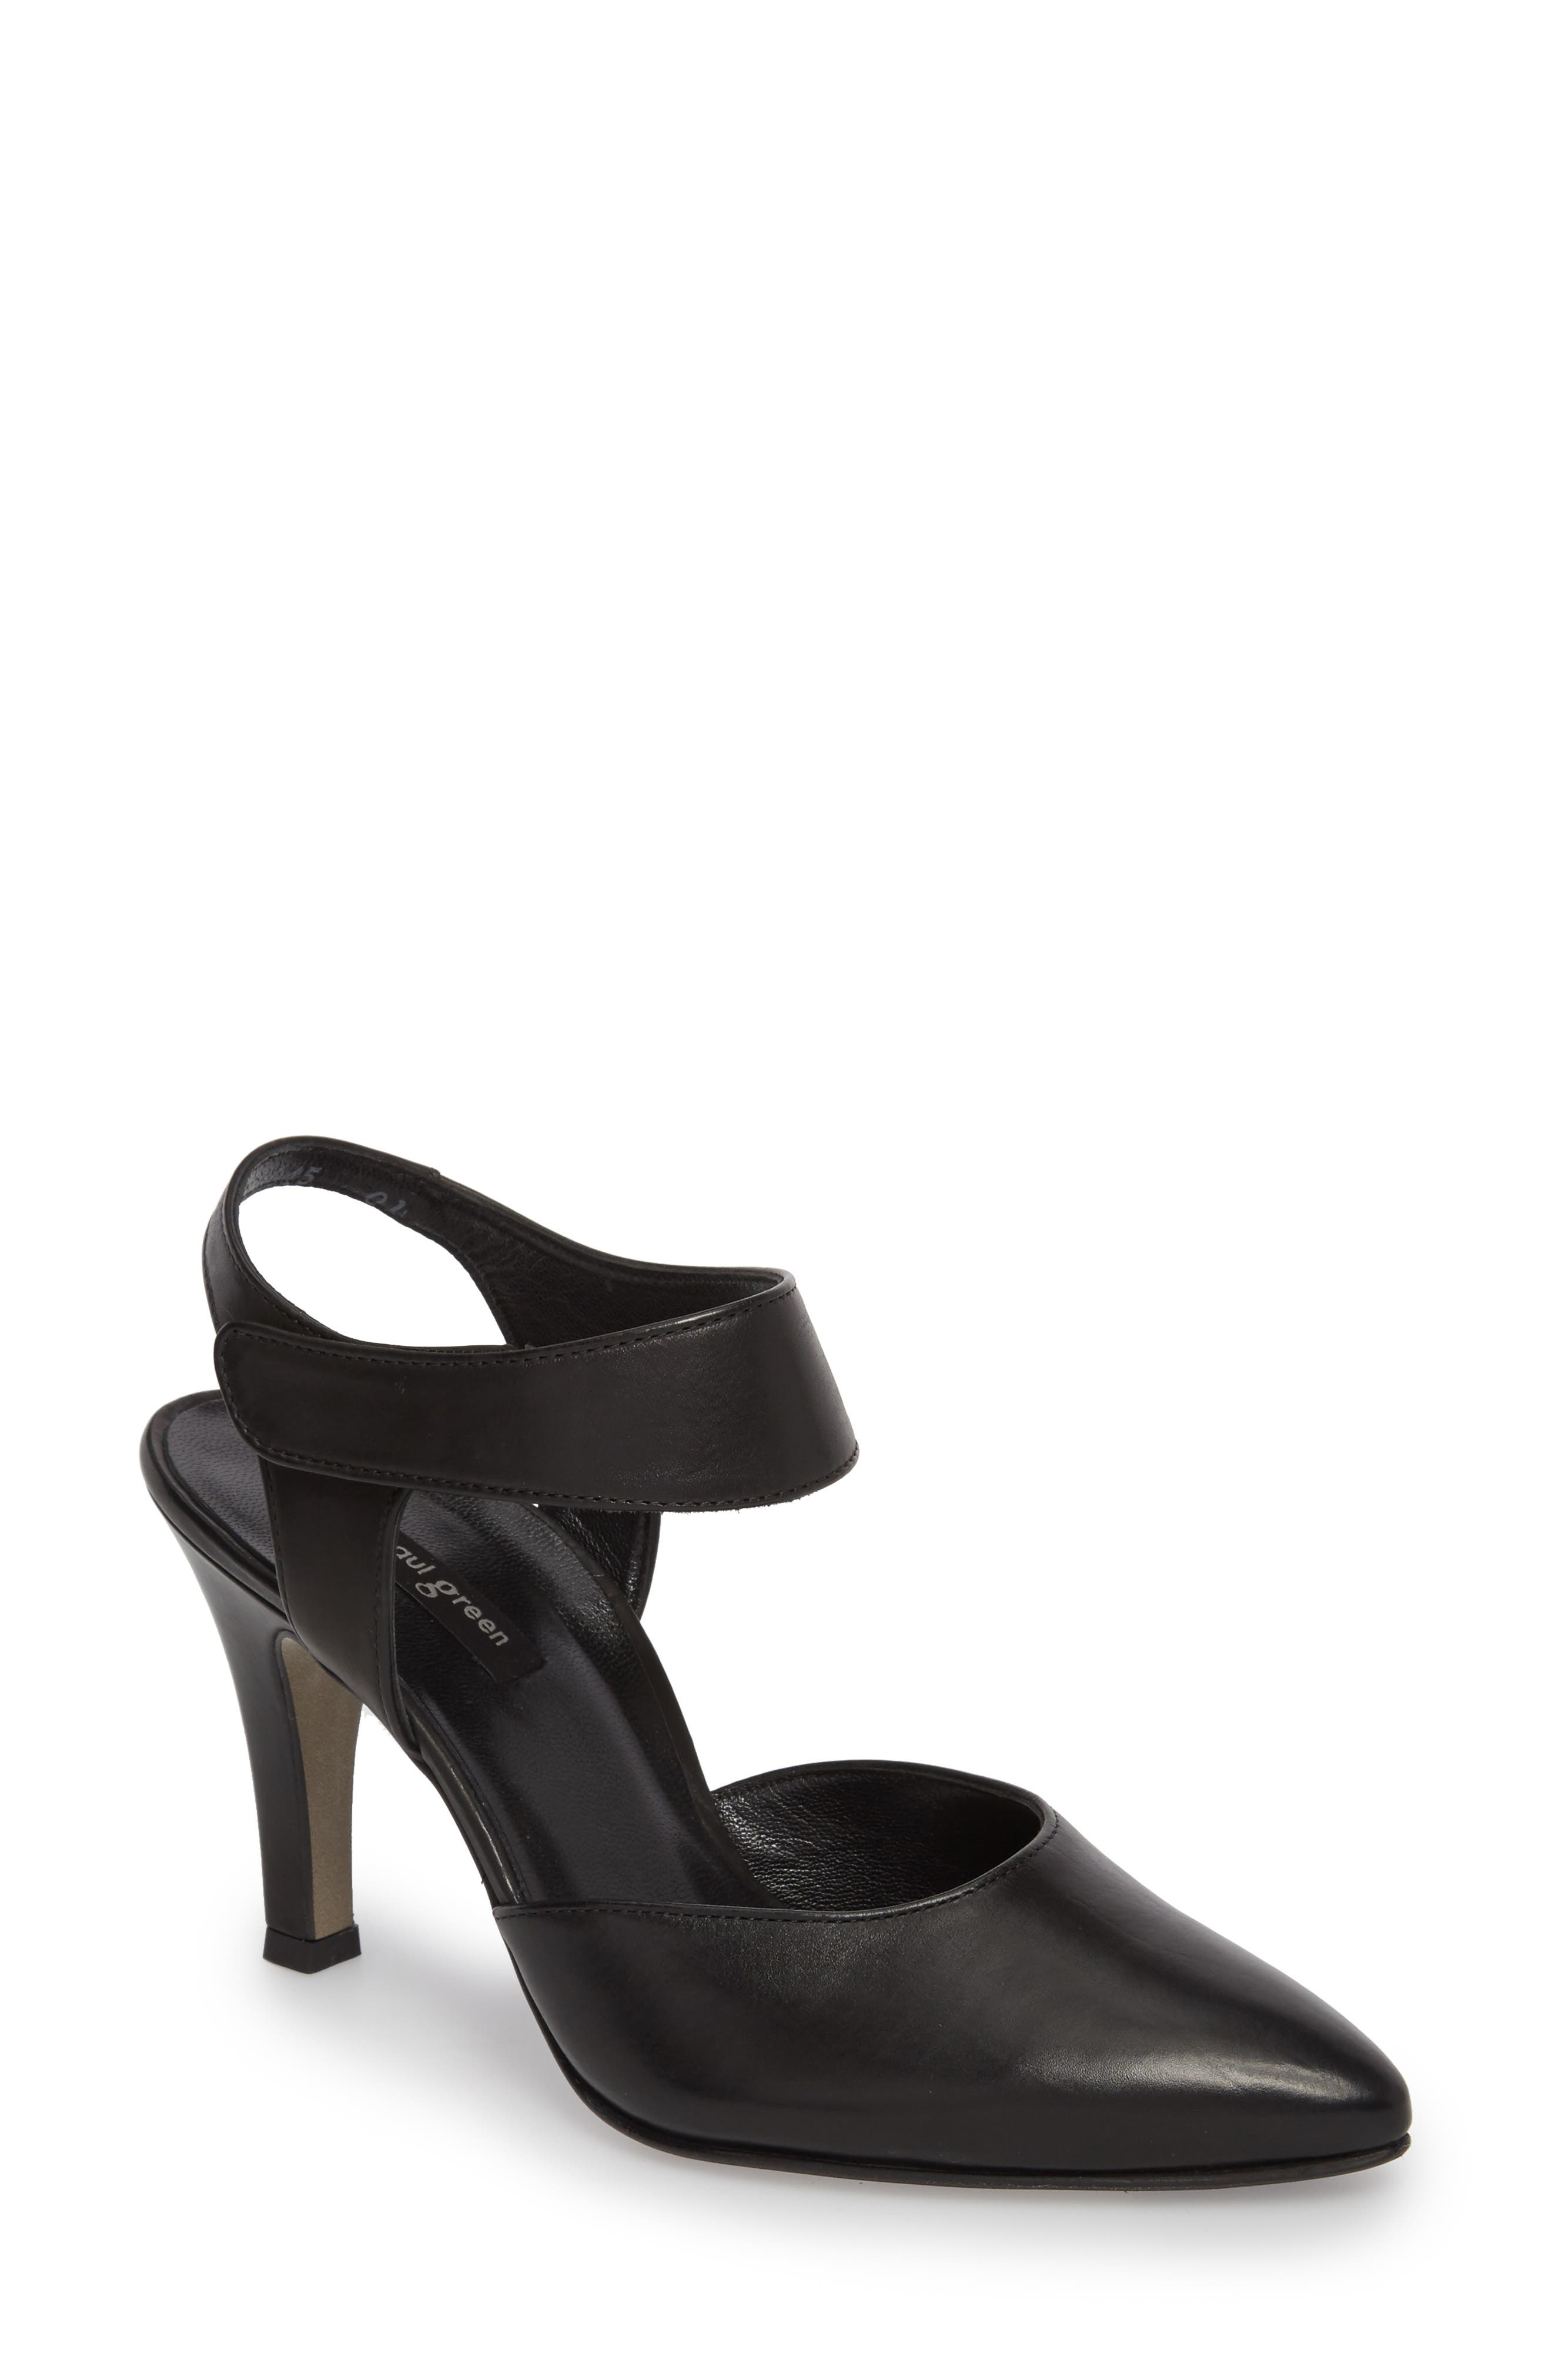 Nicolette Pointy Toe Pump,                             Main thumbnail 1, color,                             BLACK LEATHER